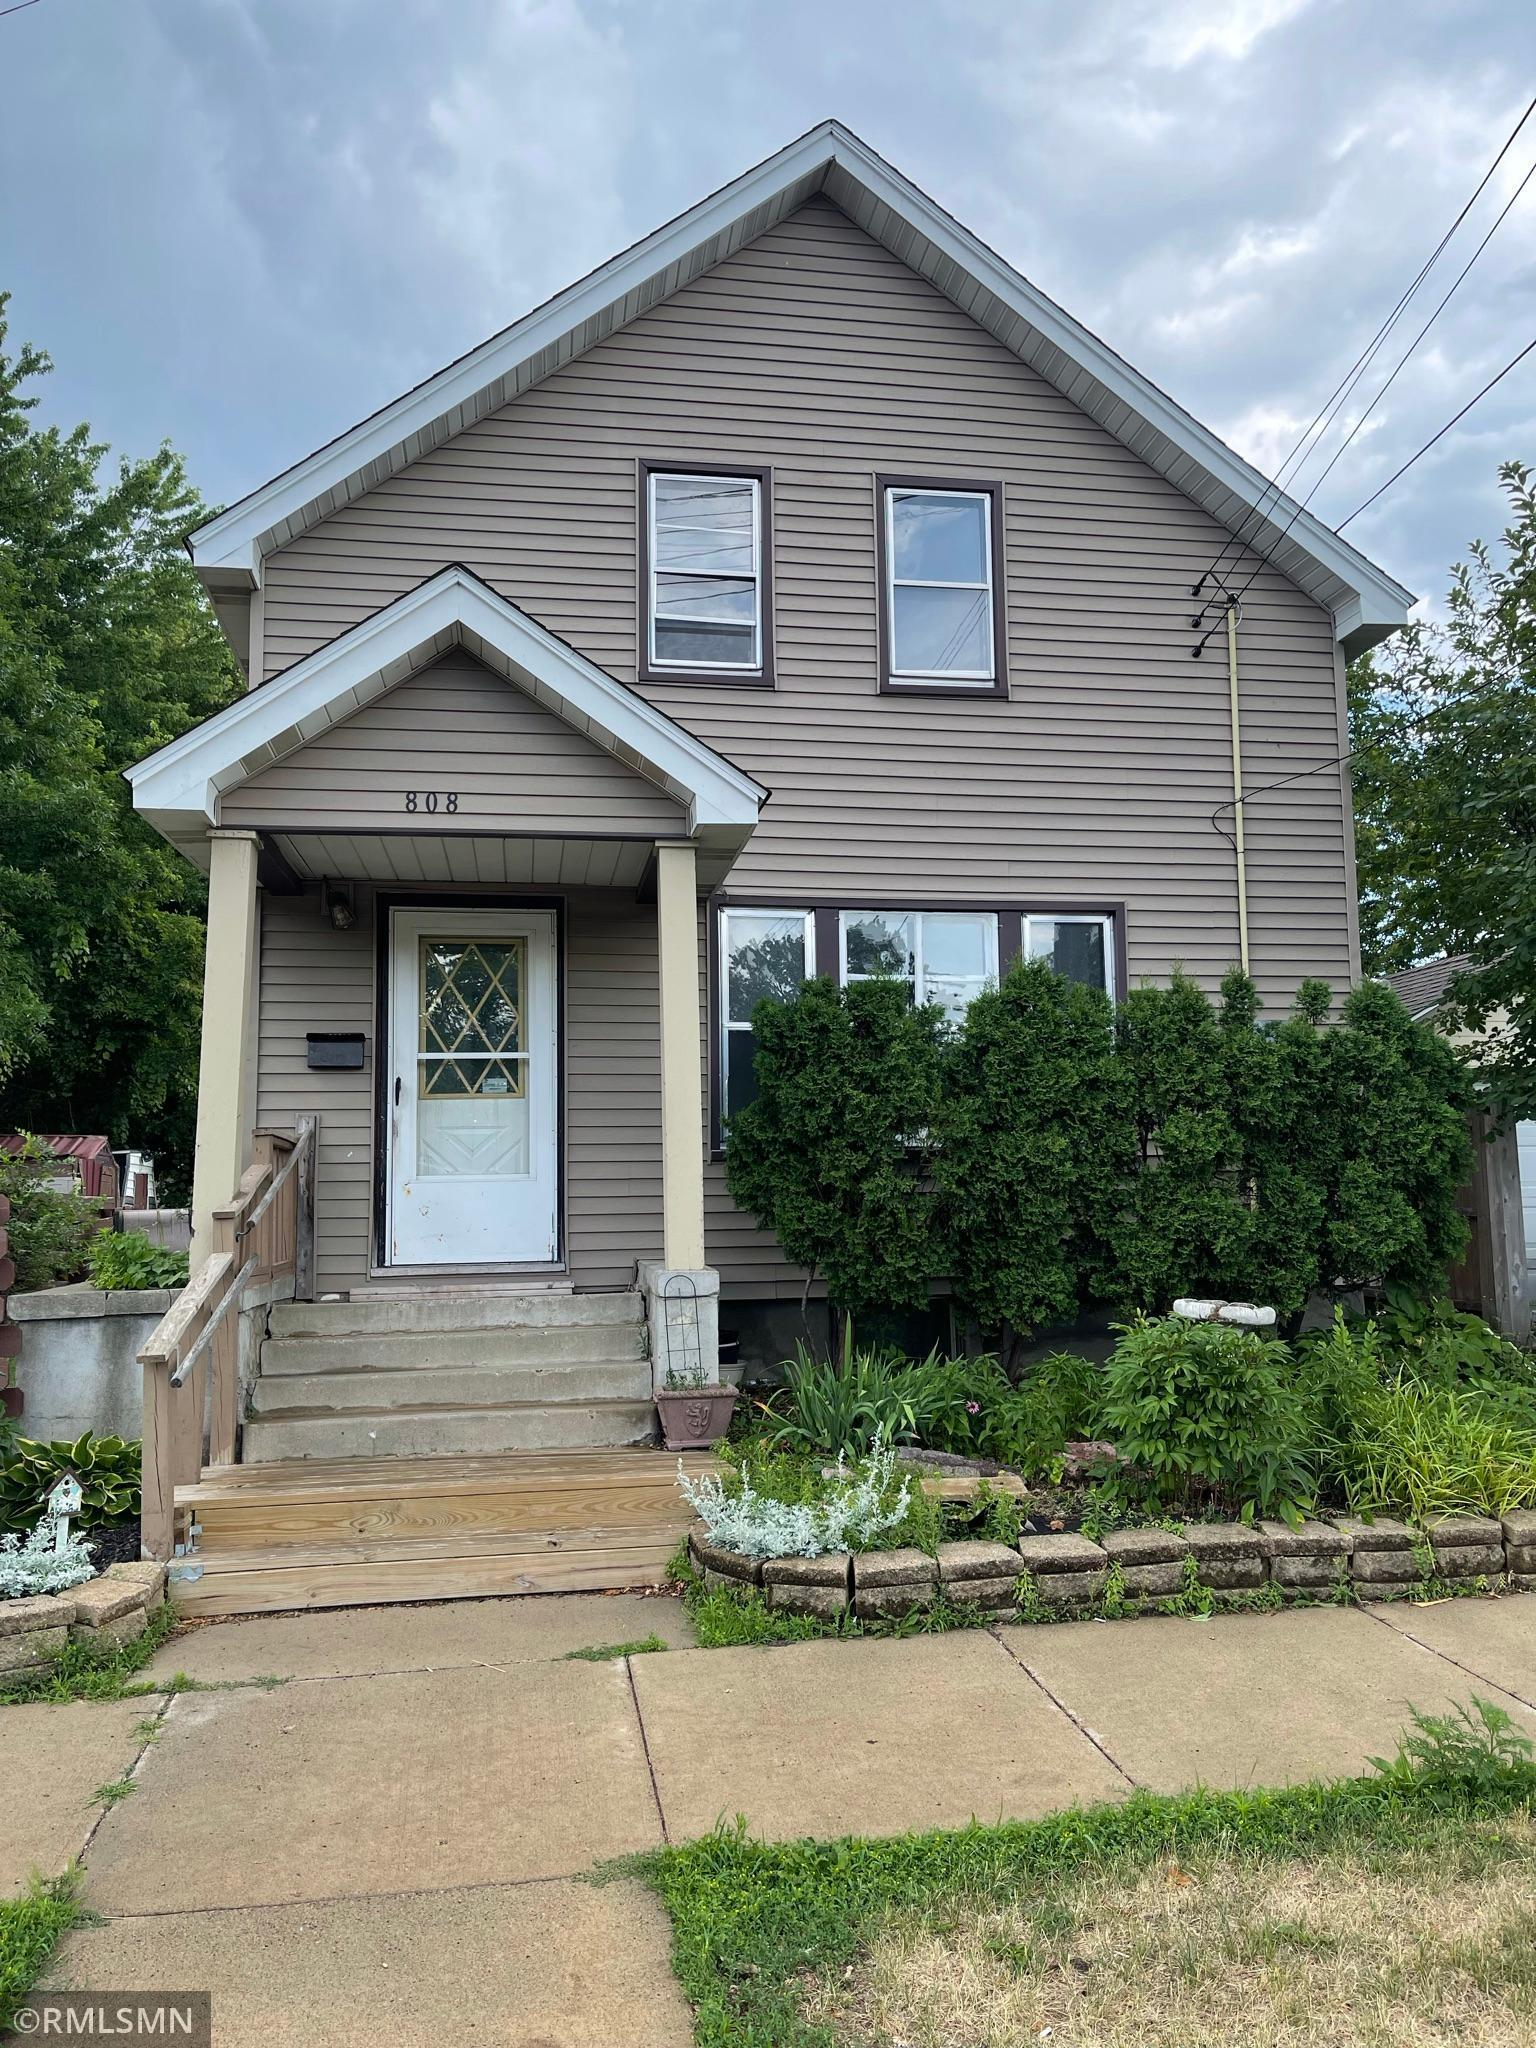 Turn this cute house into a charmer! Lots of potential!!